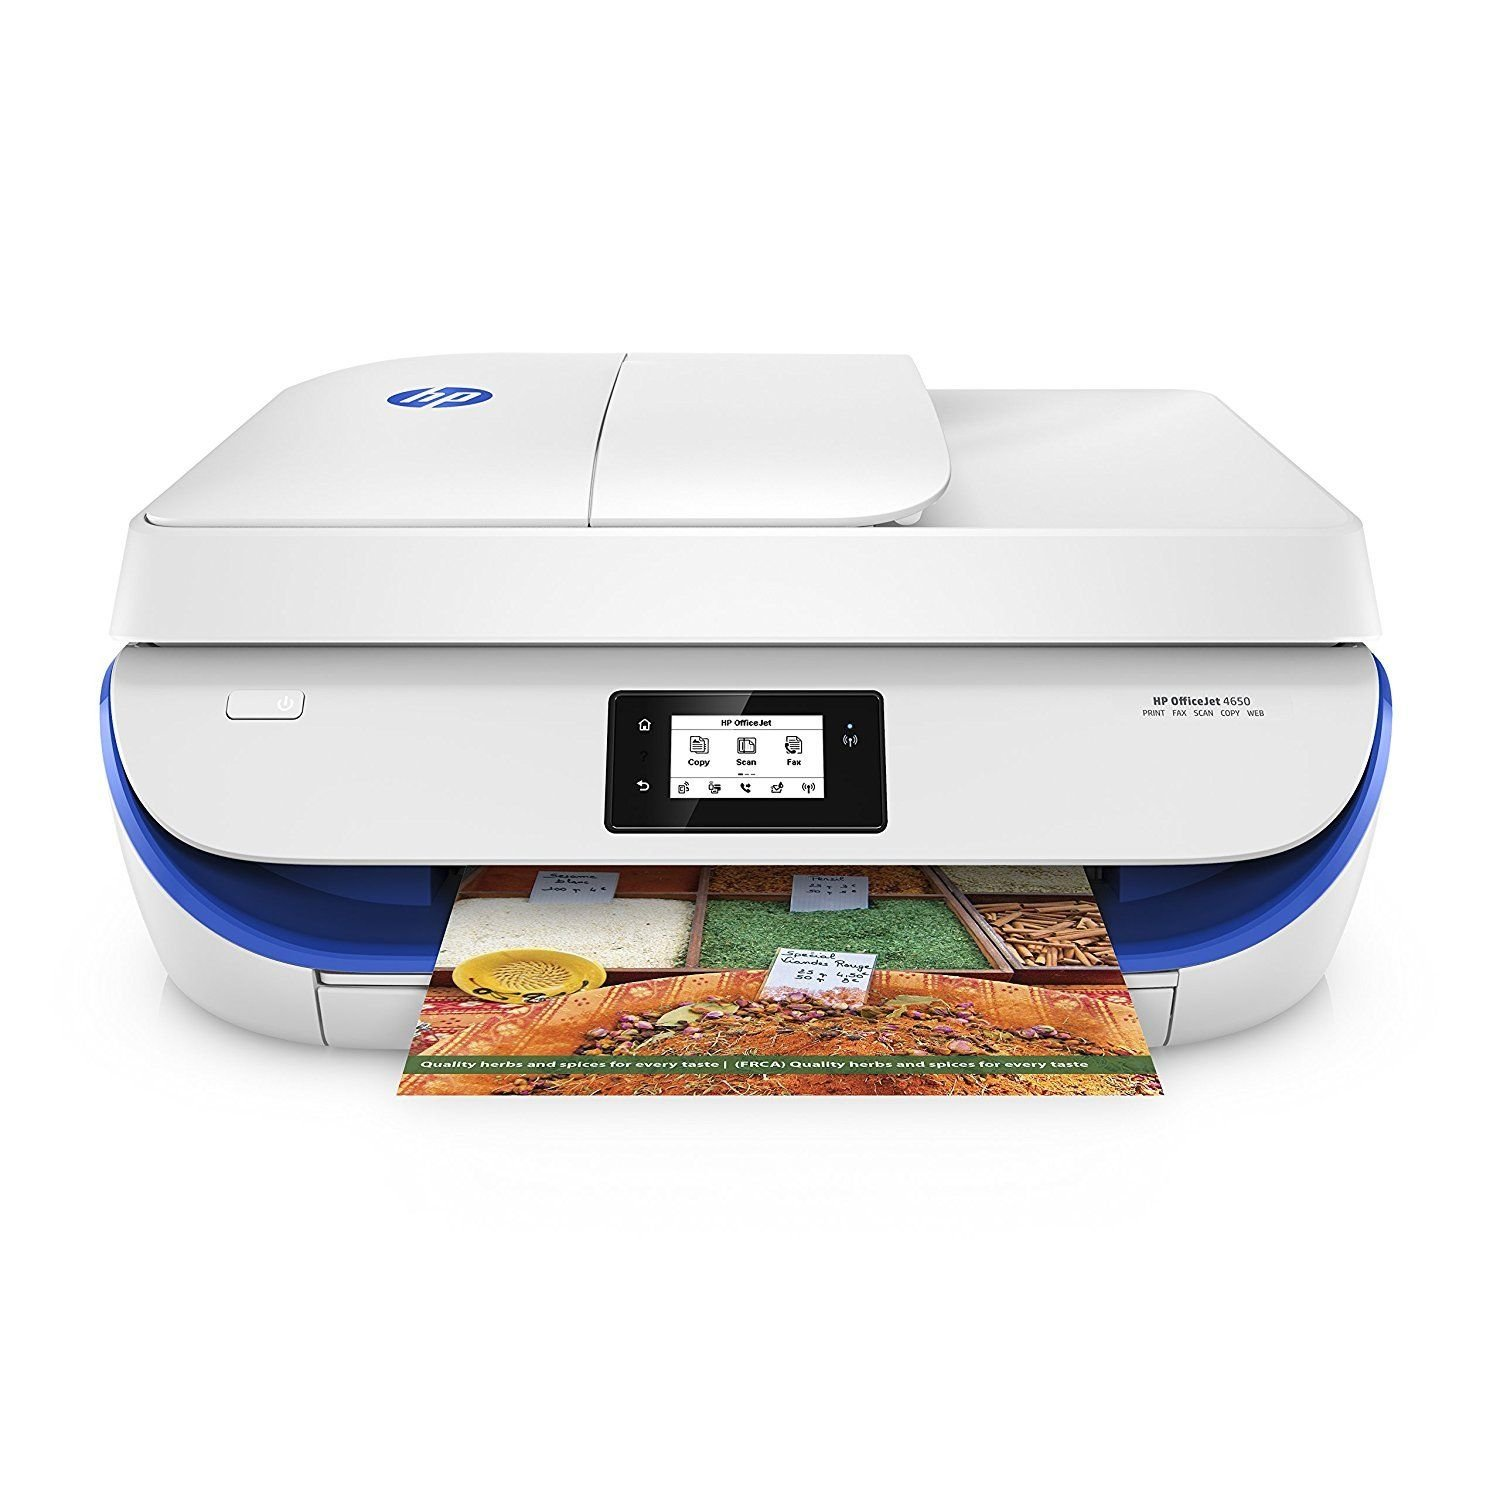 HP OfficeJet 4650 Wireless All-in-One Photo Printer, in White and Blue (Certified Refurbished) by HP (Image #1)